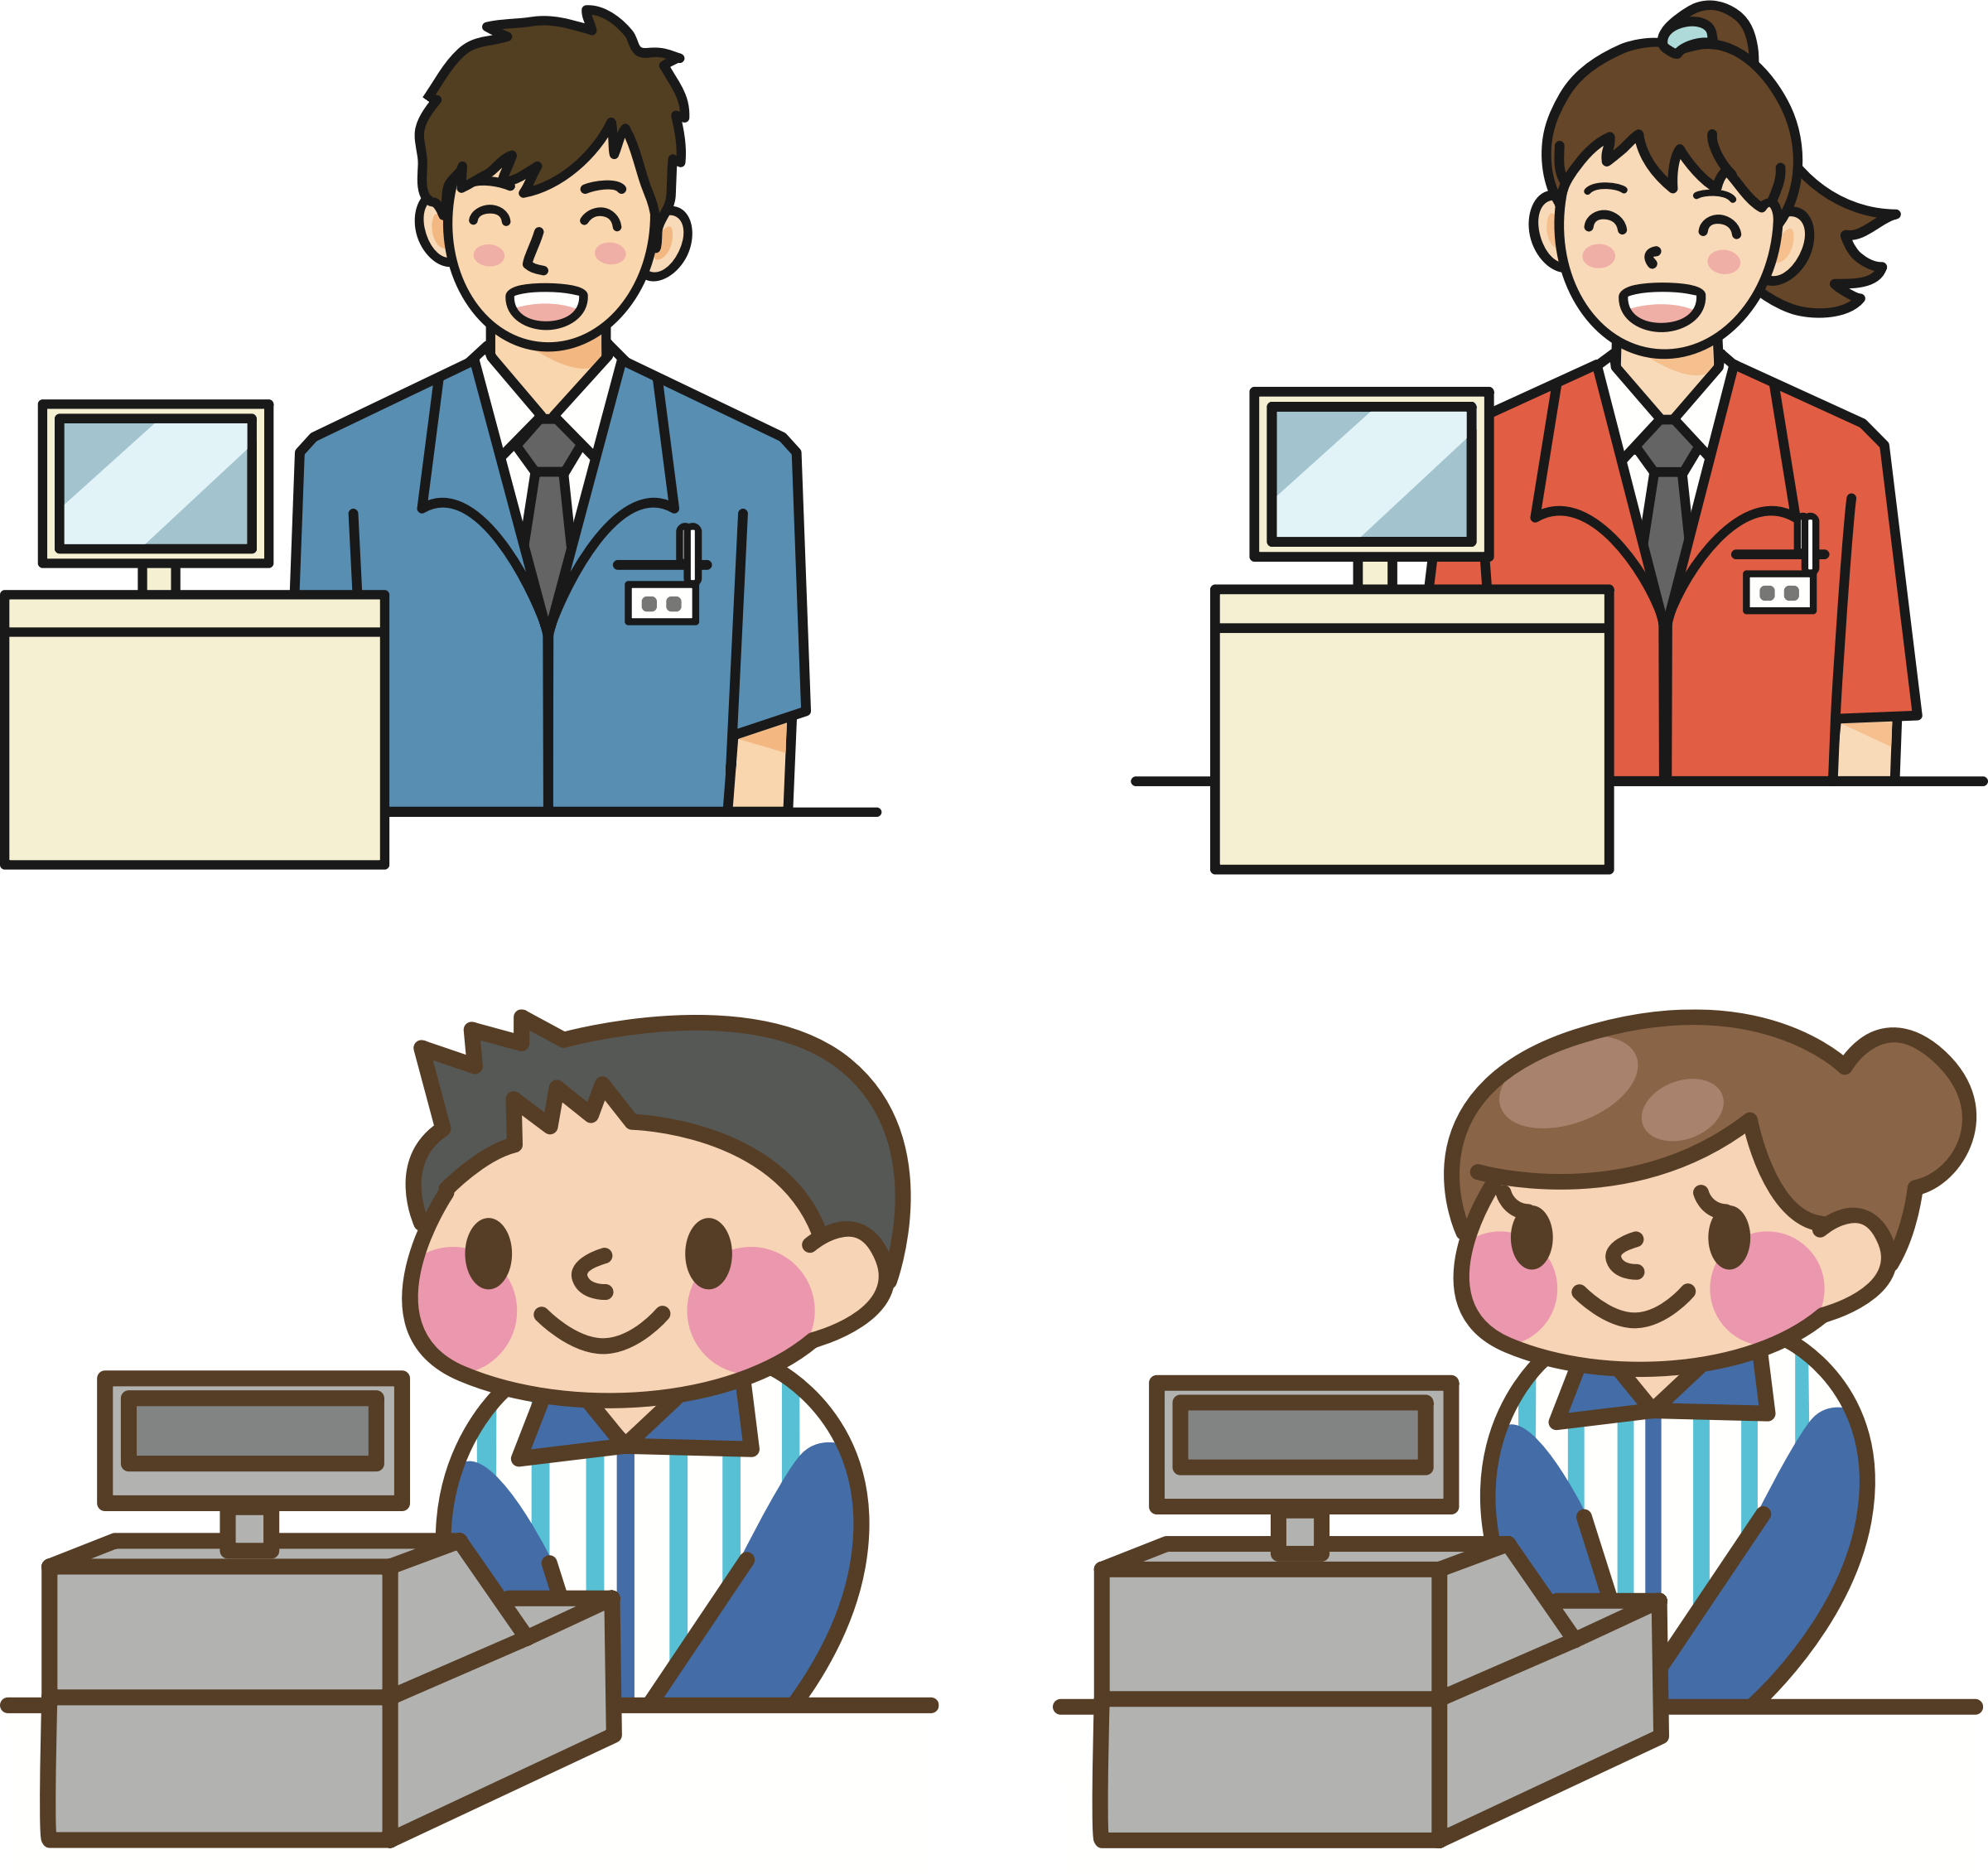 image free download Cashier clipart. Cashiers big image png